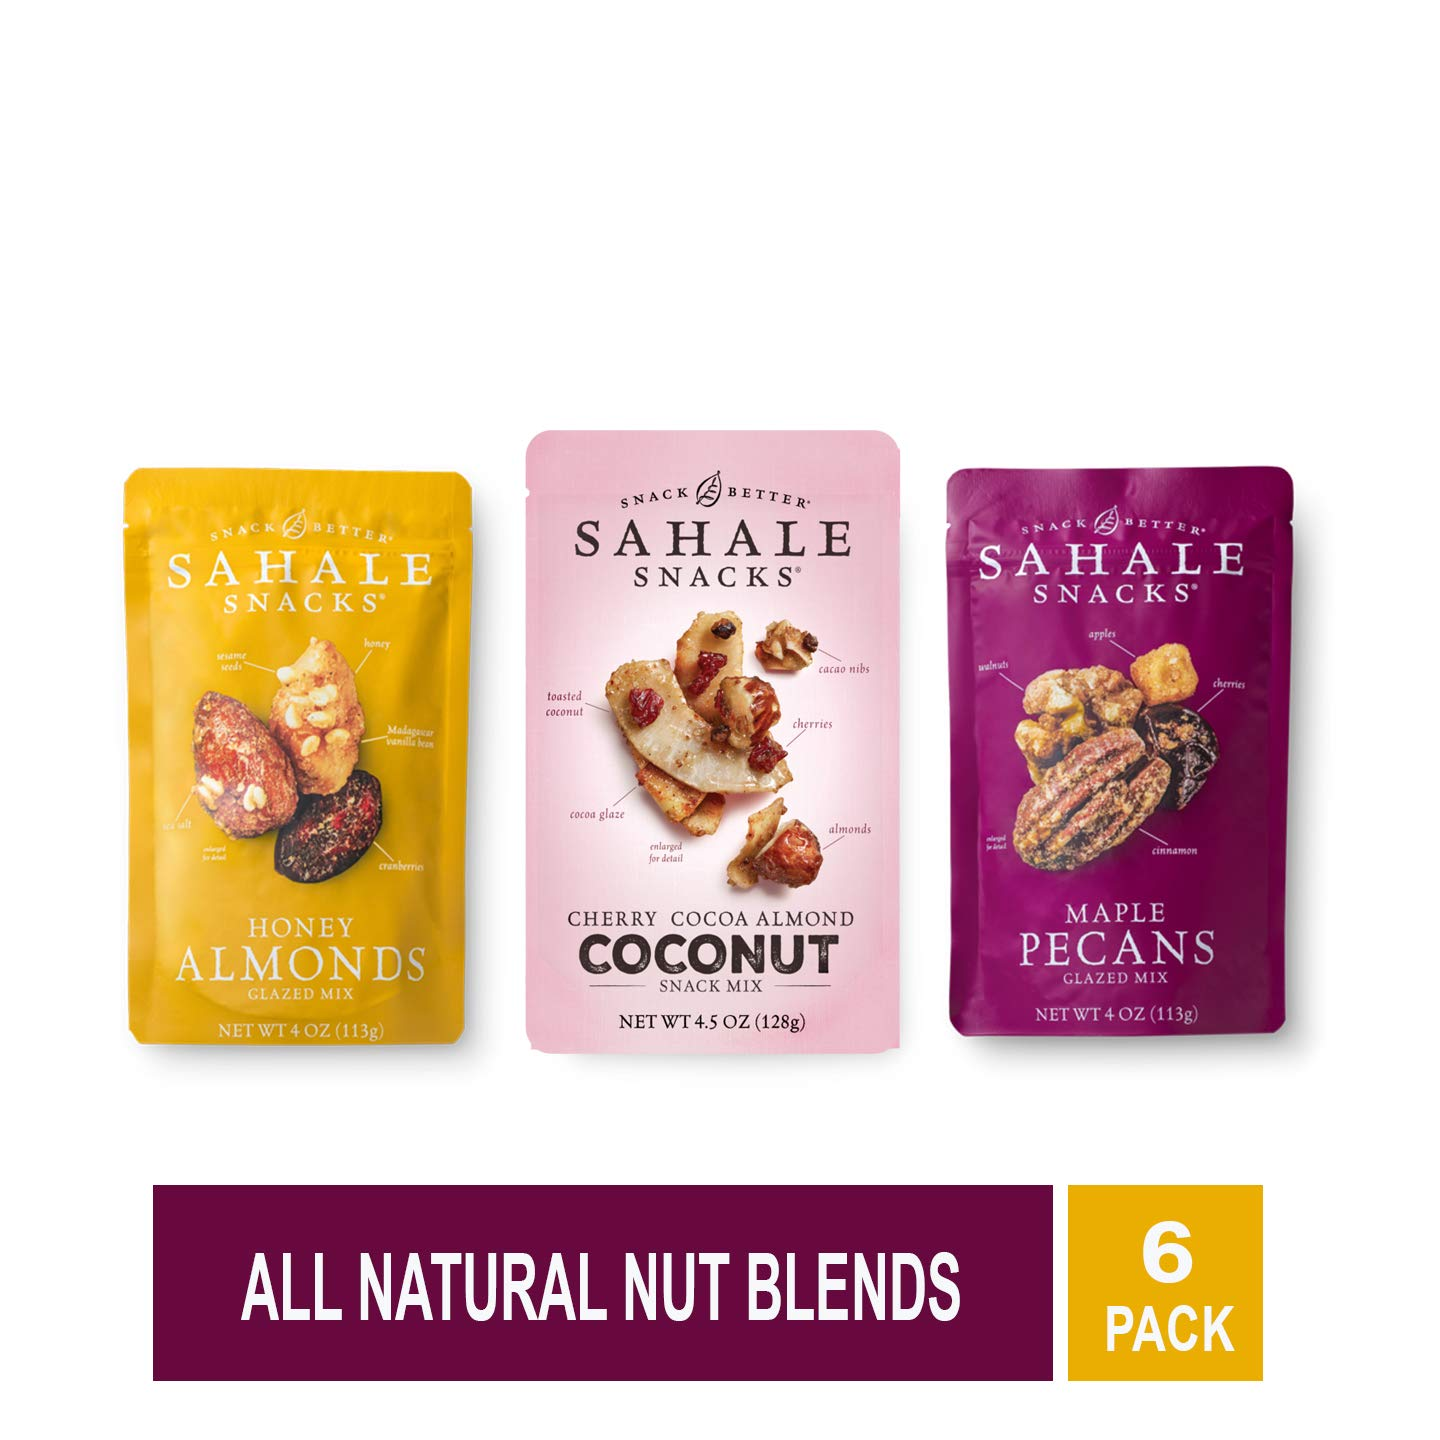 Sahale Snacks, Nut Snacks in a Resealable Pouch Variety of 3 Flavors ( Maple Pecans, Cherry Cocoa Coconut, Honey Almonds Glazed ) Pack of 6